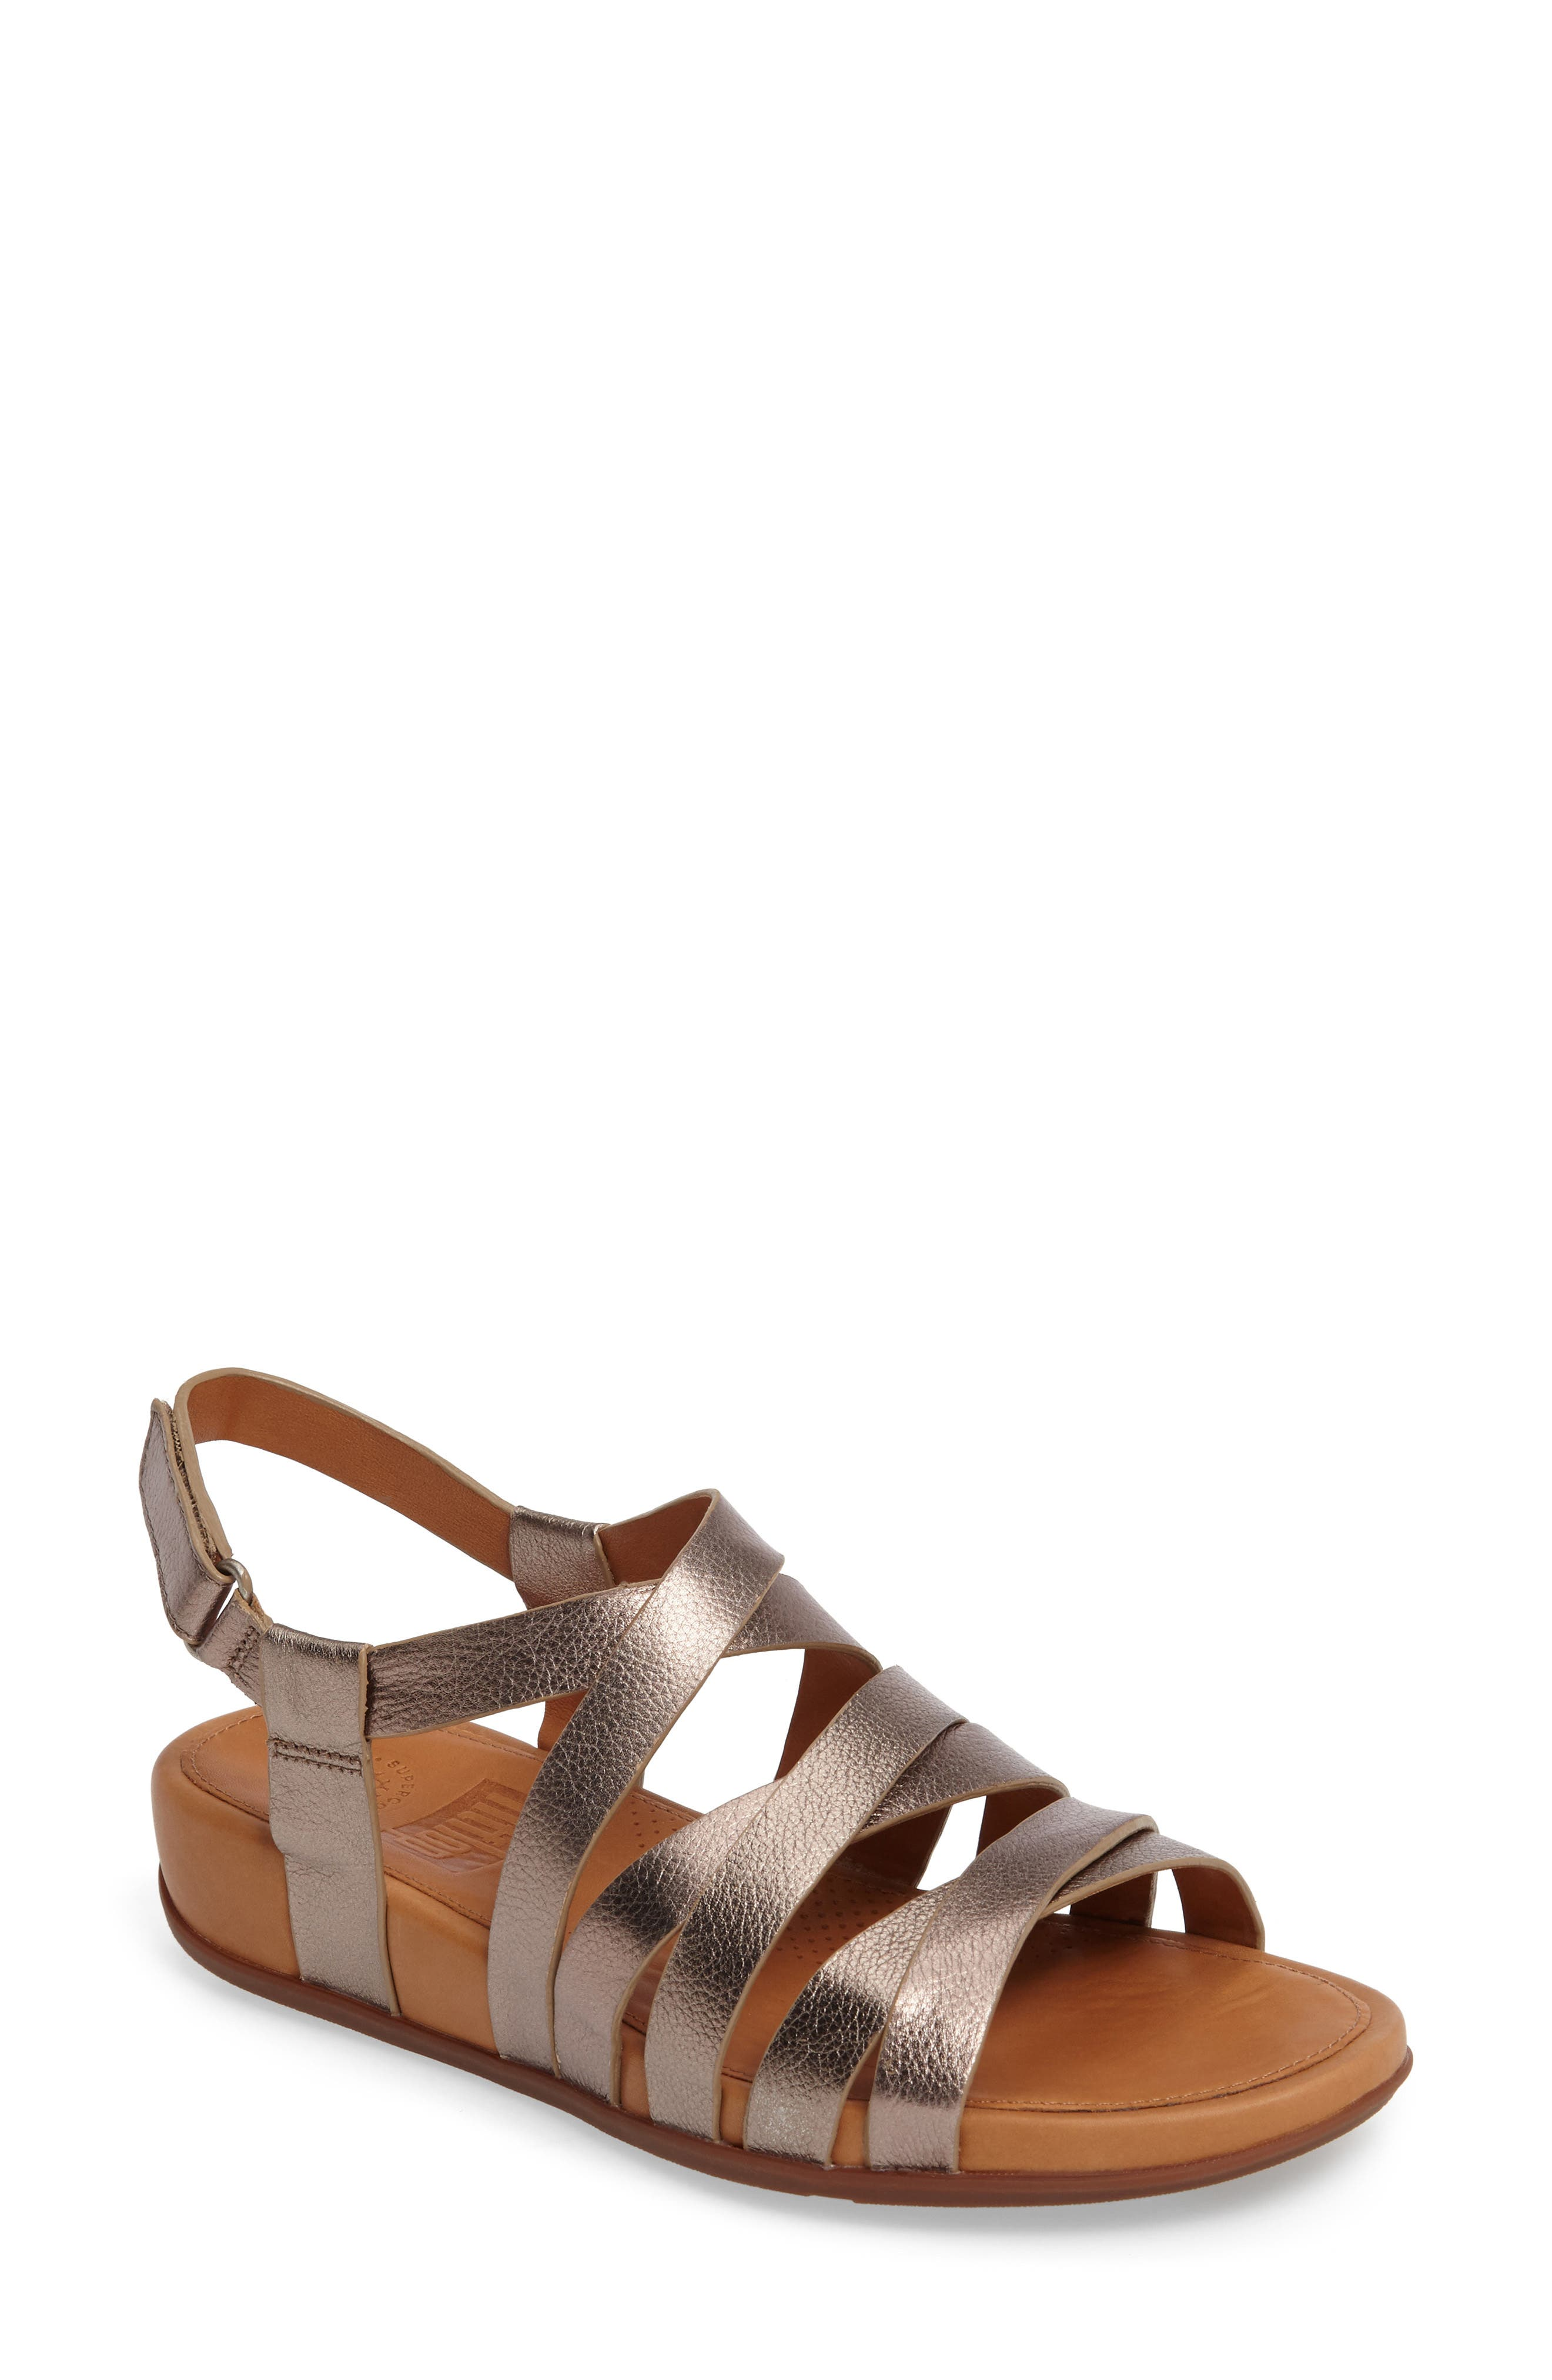 Alternate Image 1 Selected - FitFlop Lumy Gladiator Sandal (Women)